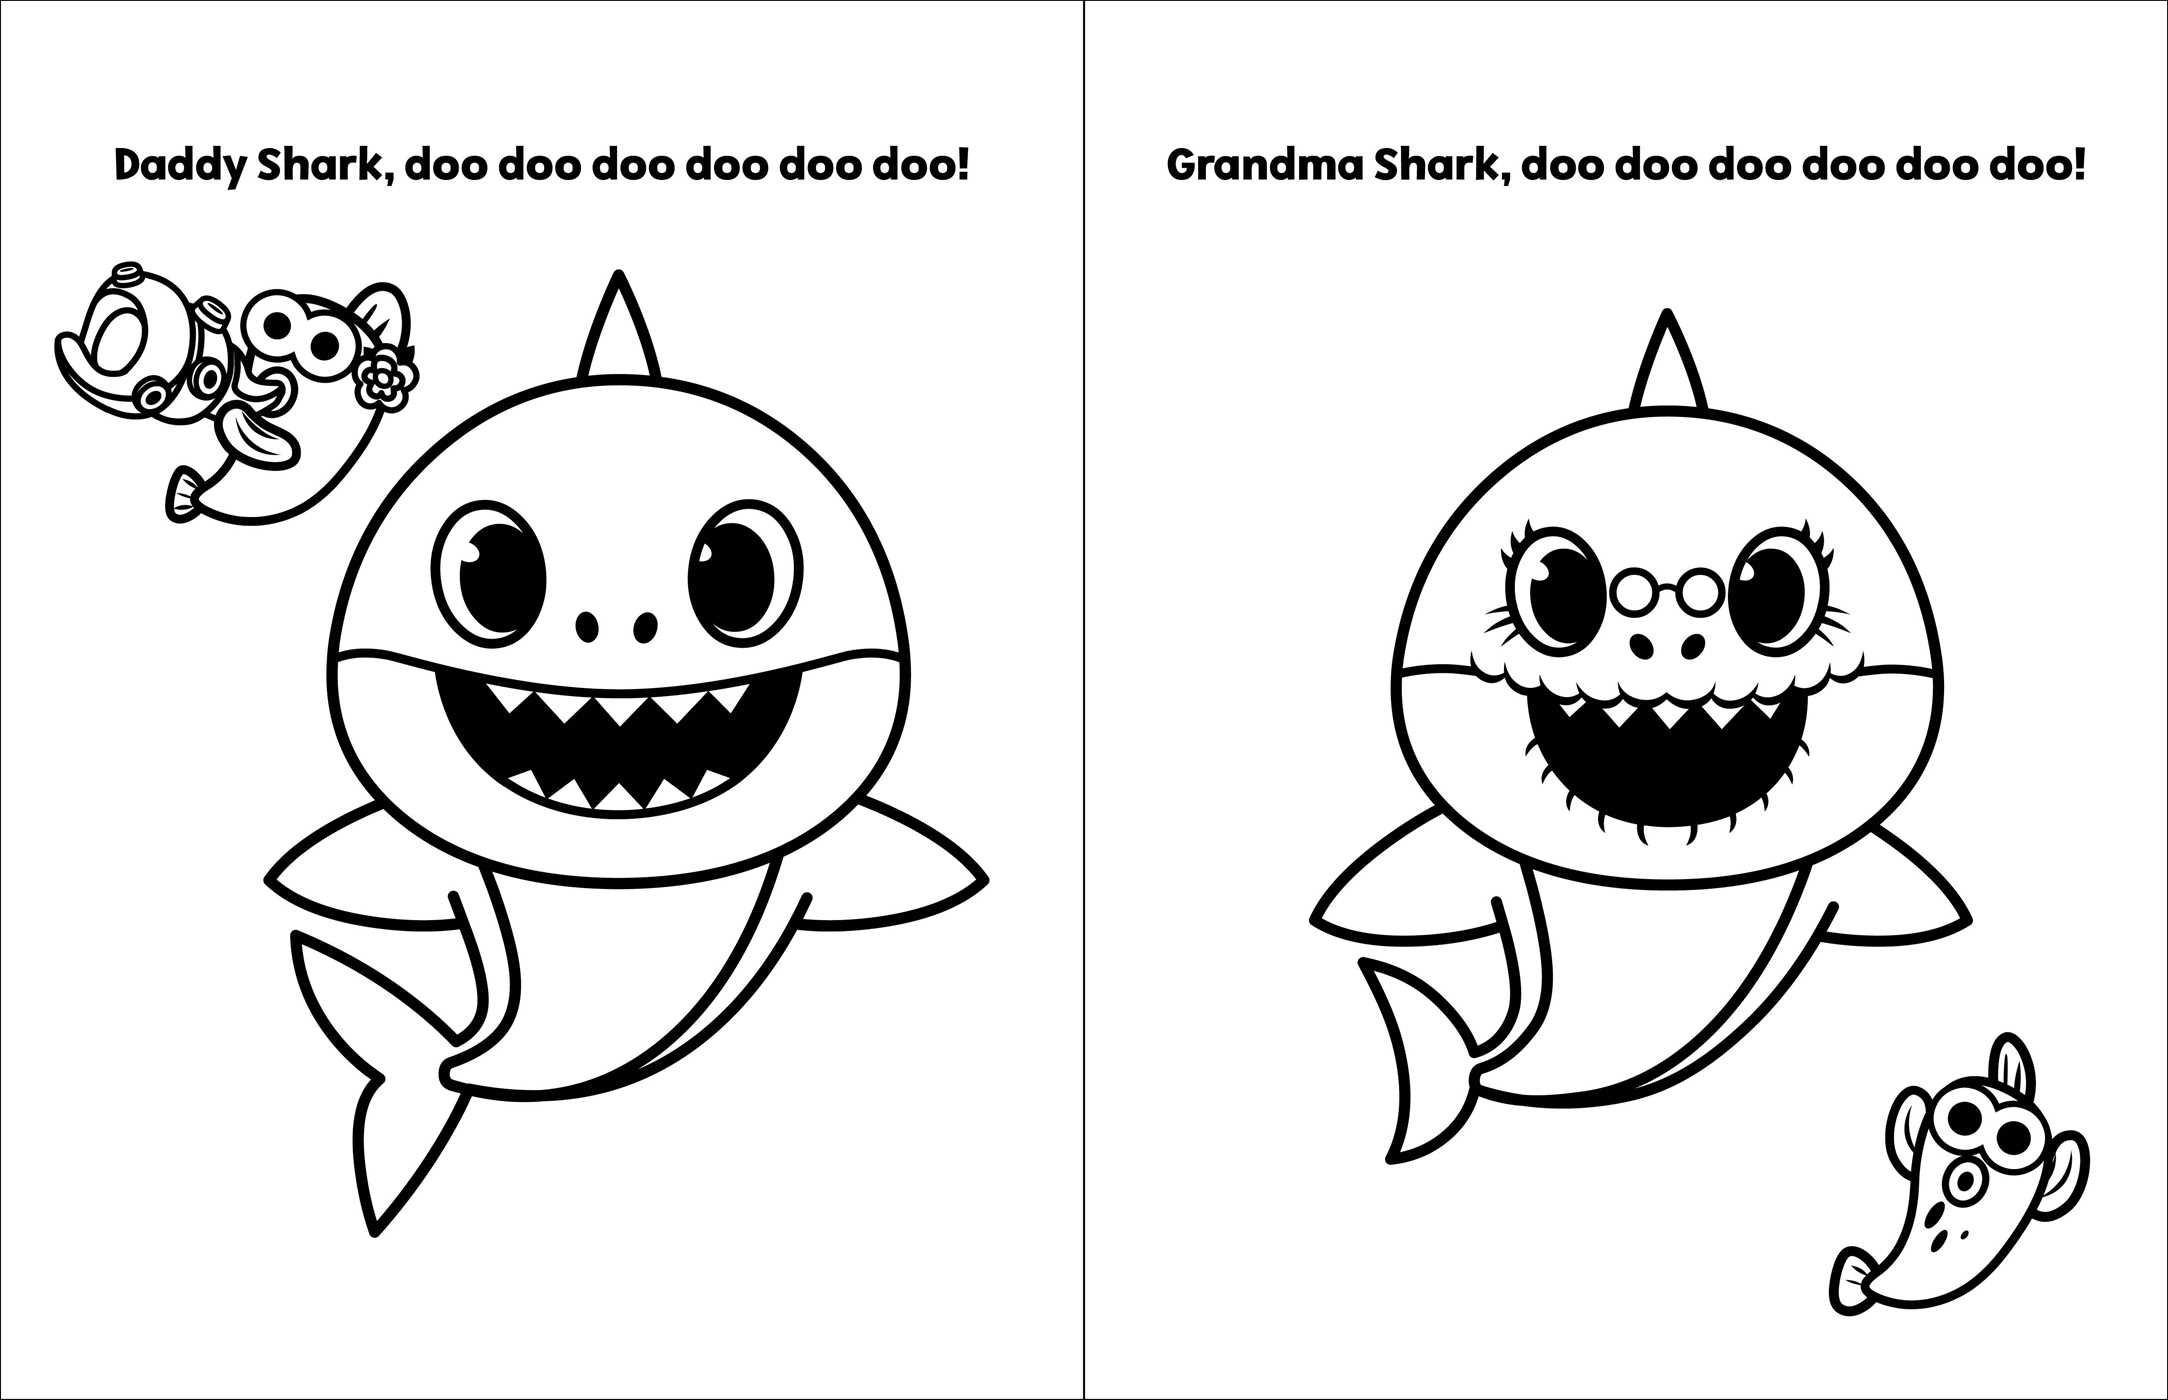 baby shark coloring images baby shark coloring pages at getcoloringscom free coloring shark baby images